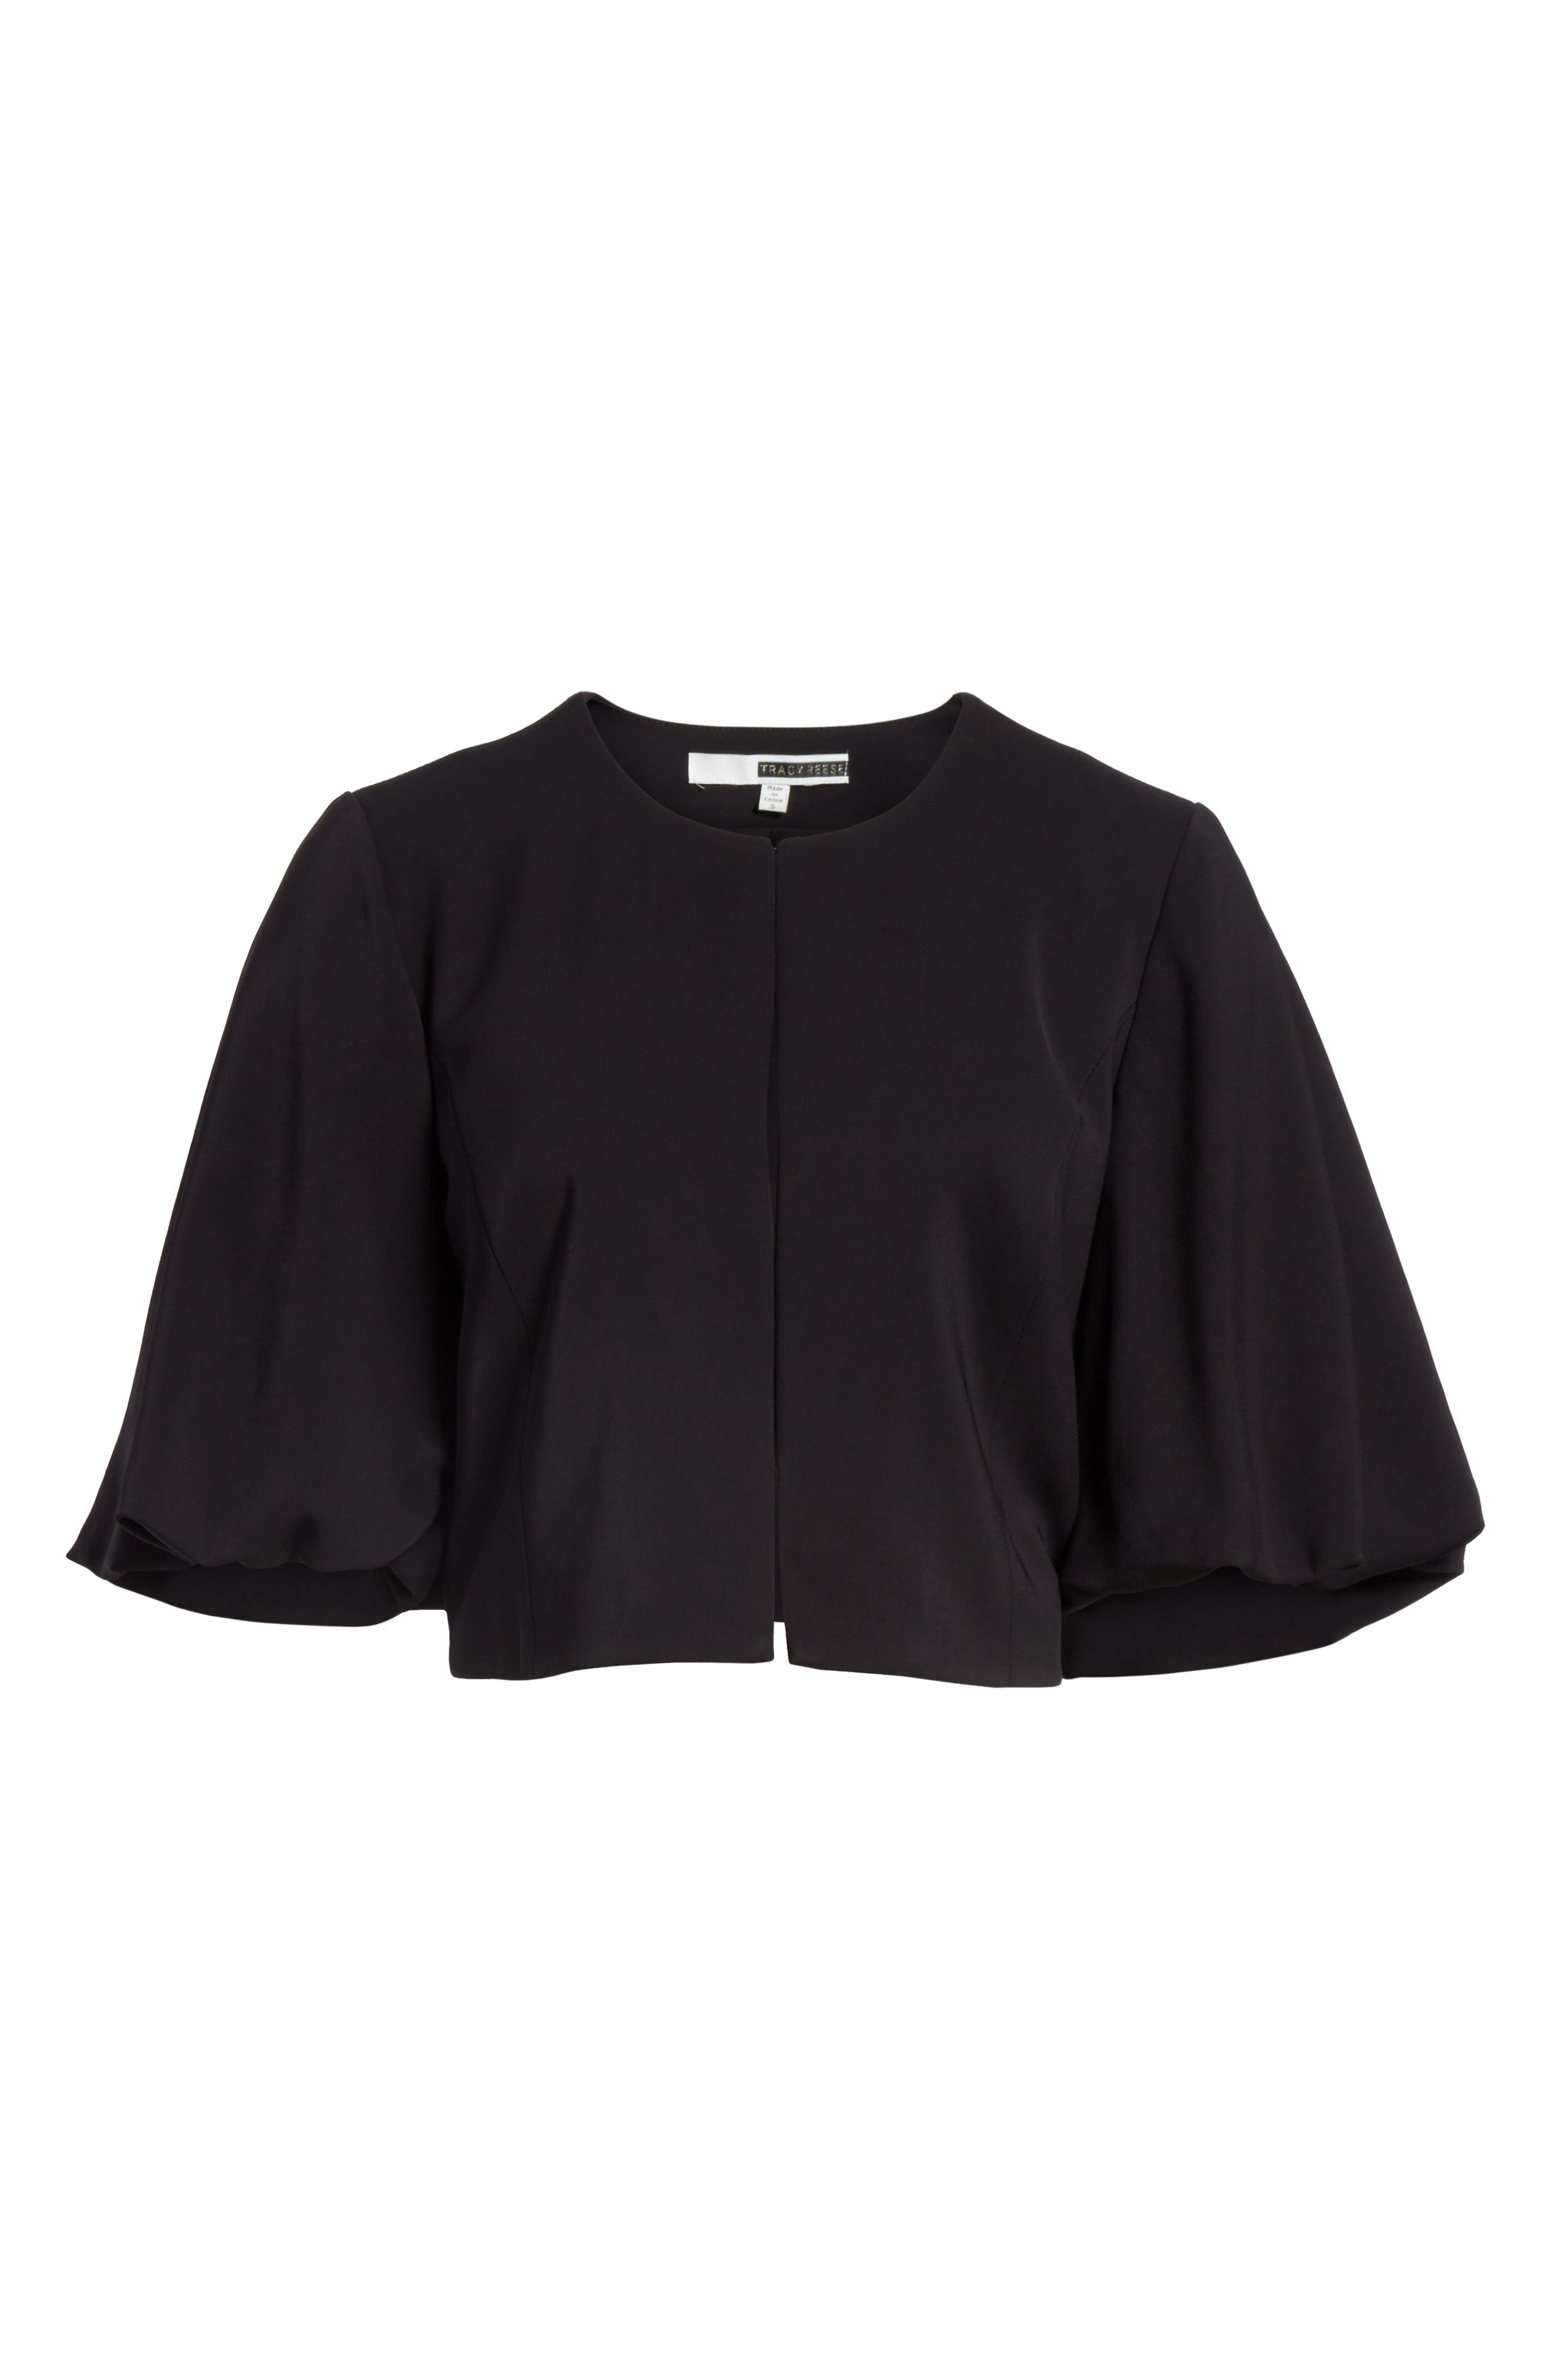 Bolero Jacket,                             Alternate thumbnail 6, color,                             Black